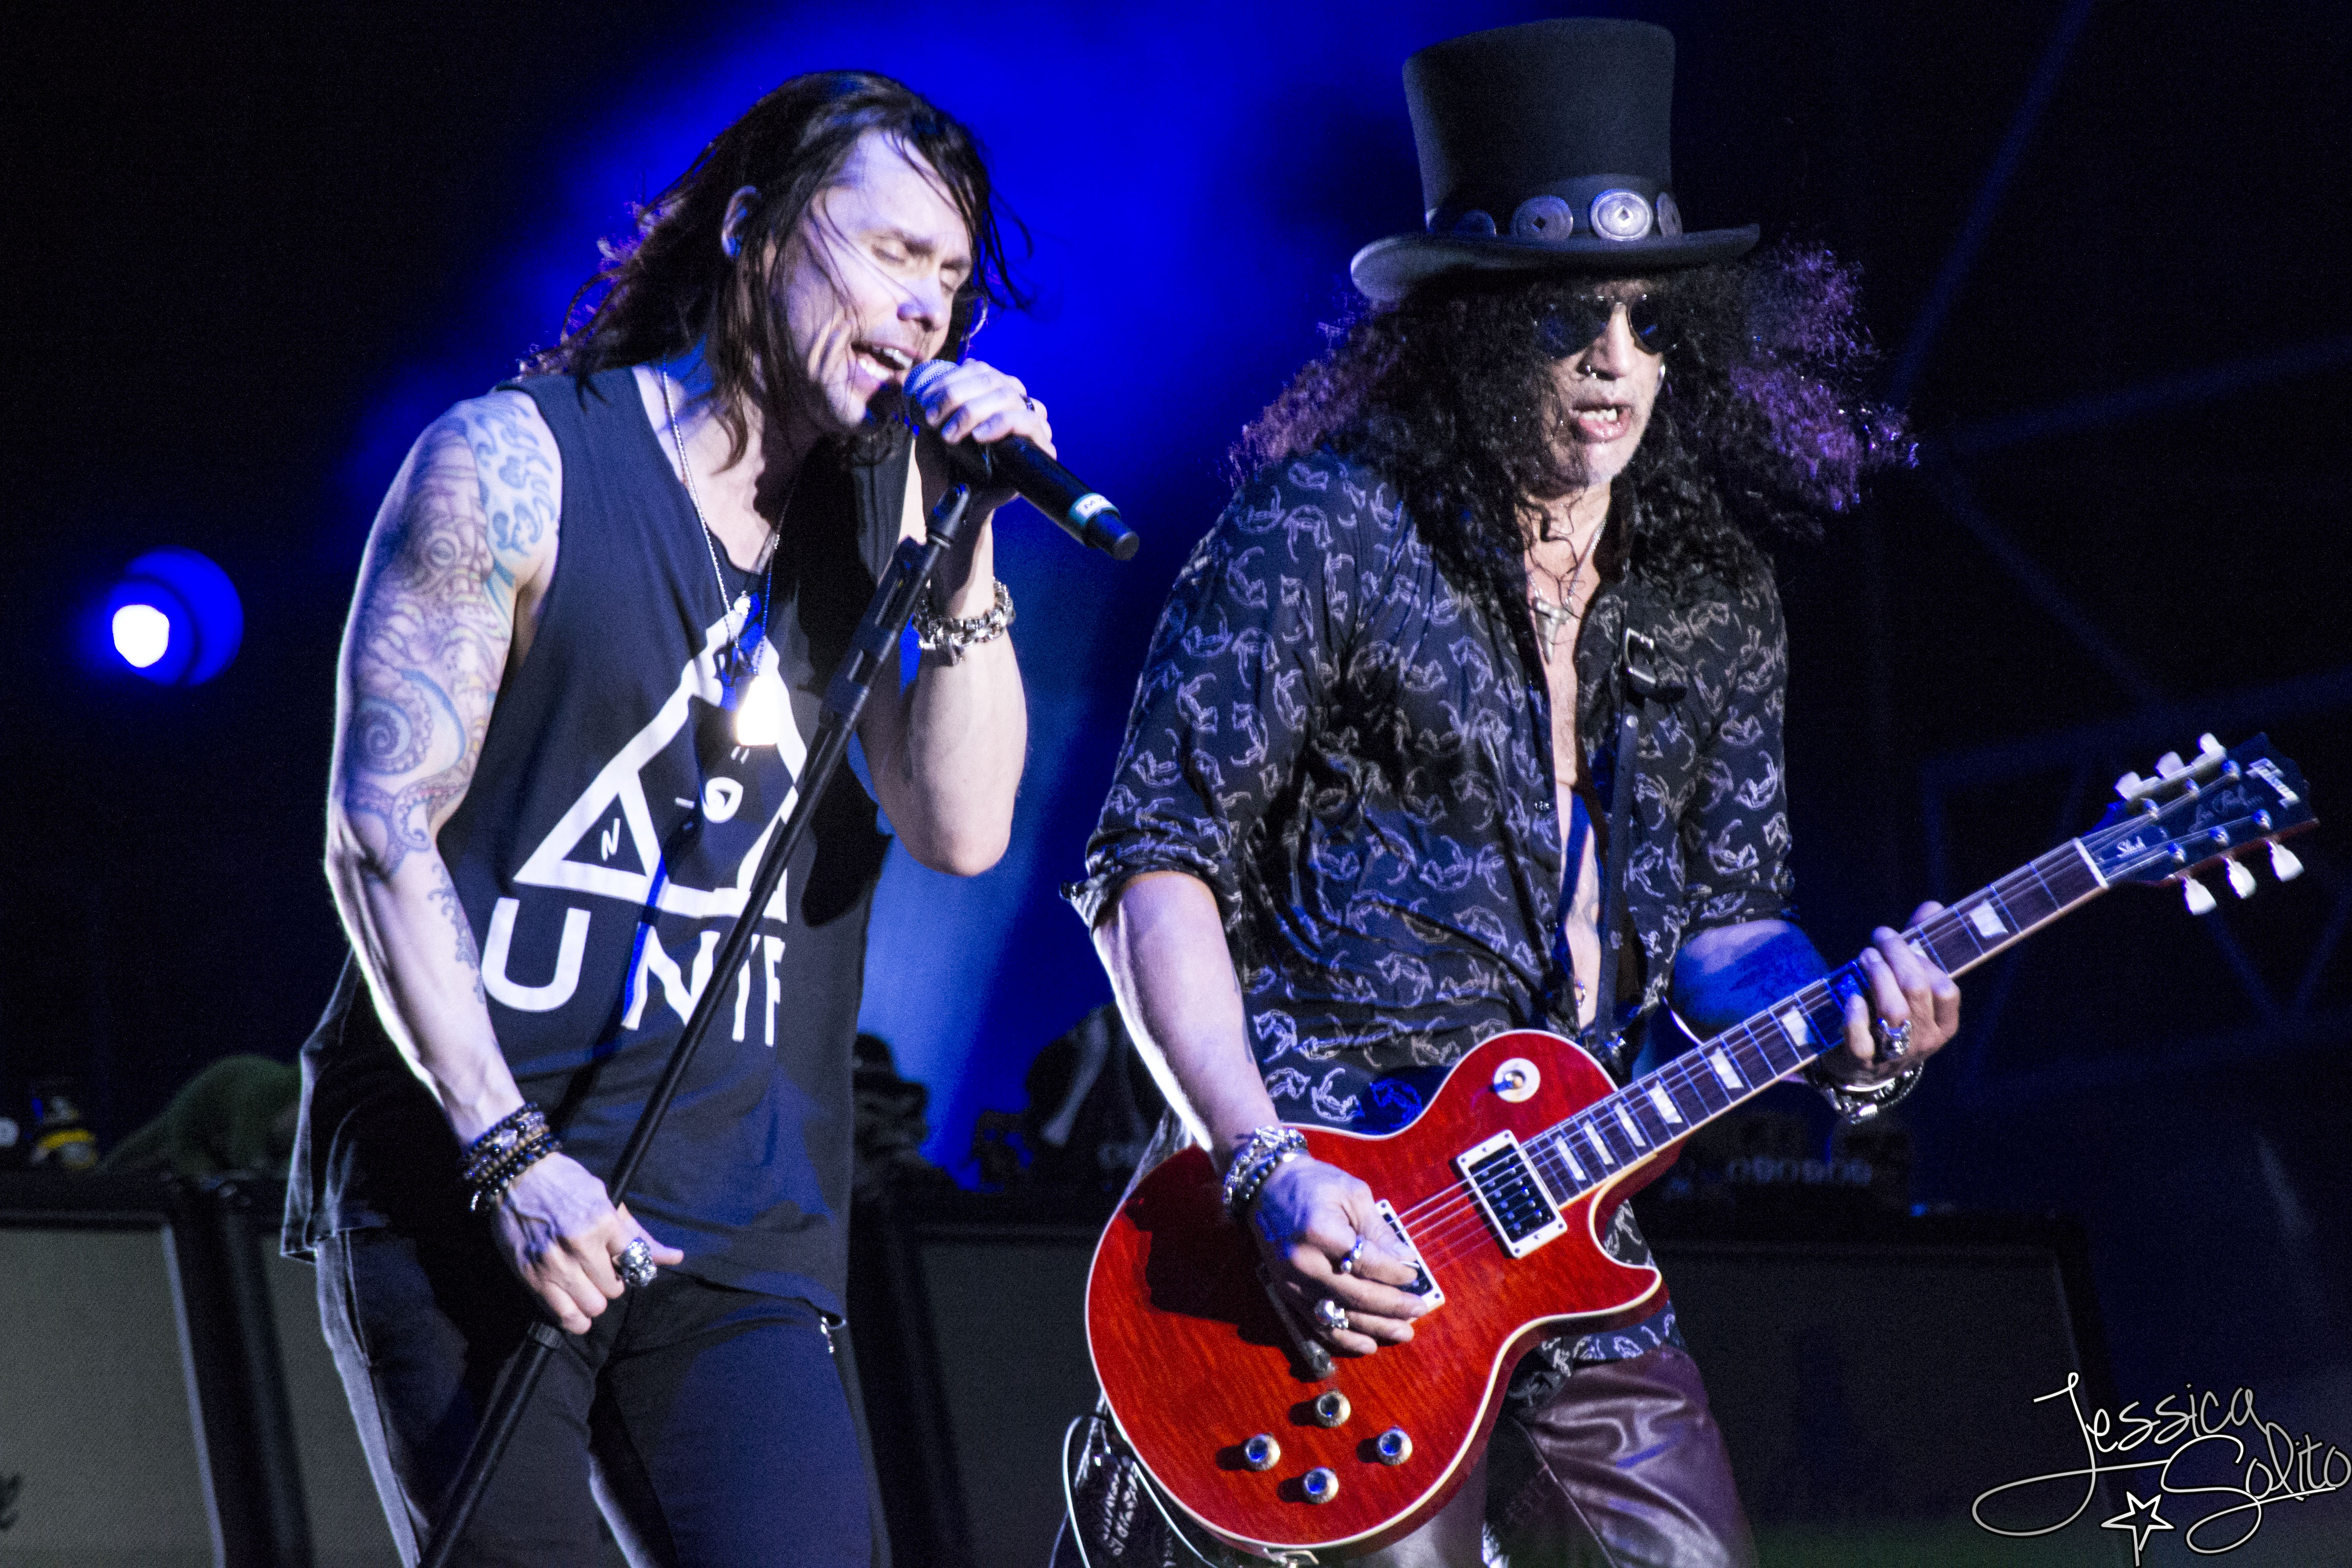 Slash feat. Myles Kennedy and The Conspirators @ Rock in Roma - 23 06 2015